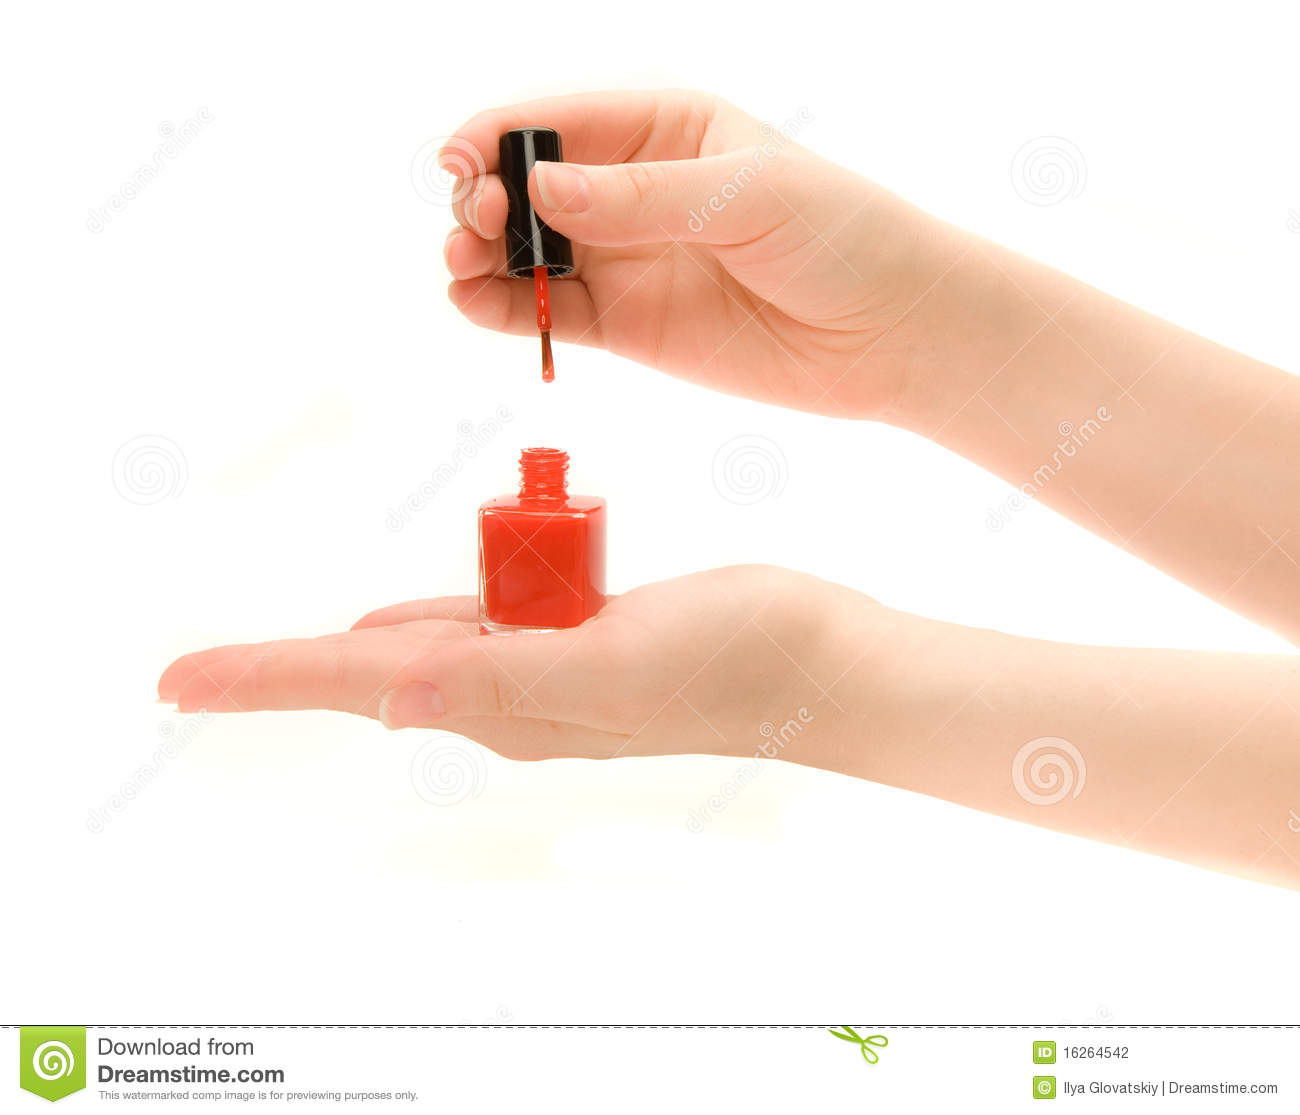 Nail Polish Colors For Younger Looking Hands: Woman's Hands Holding A Bottle Of Nail Polish Stock